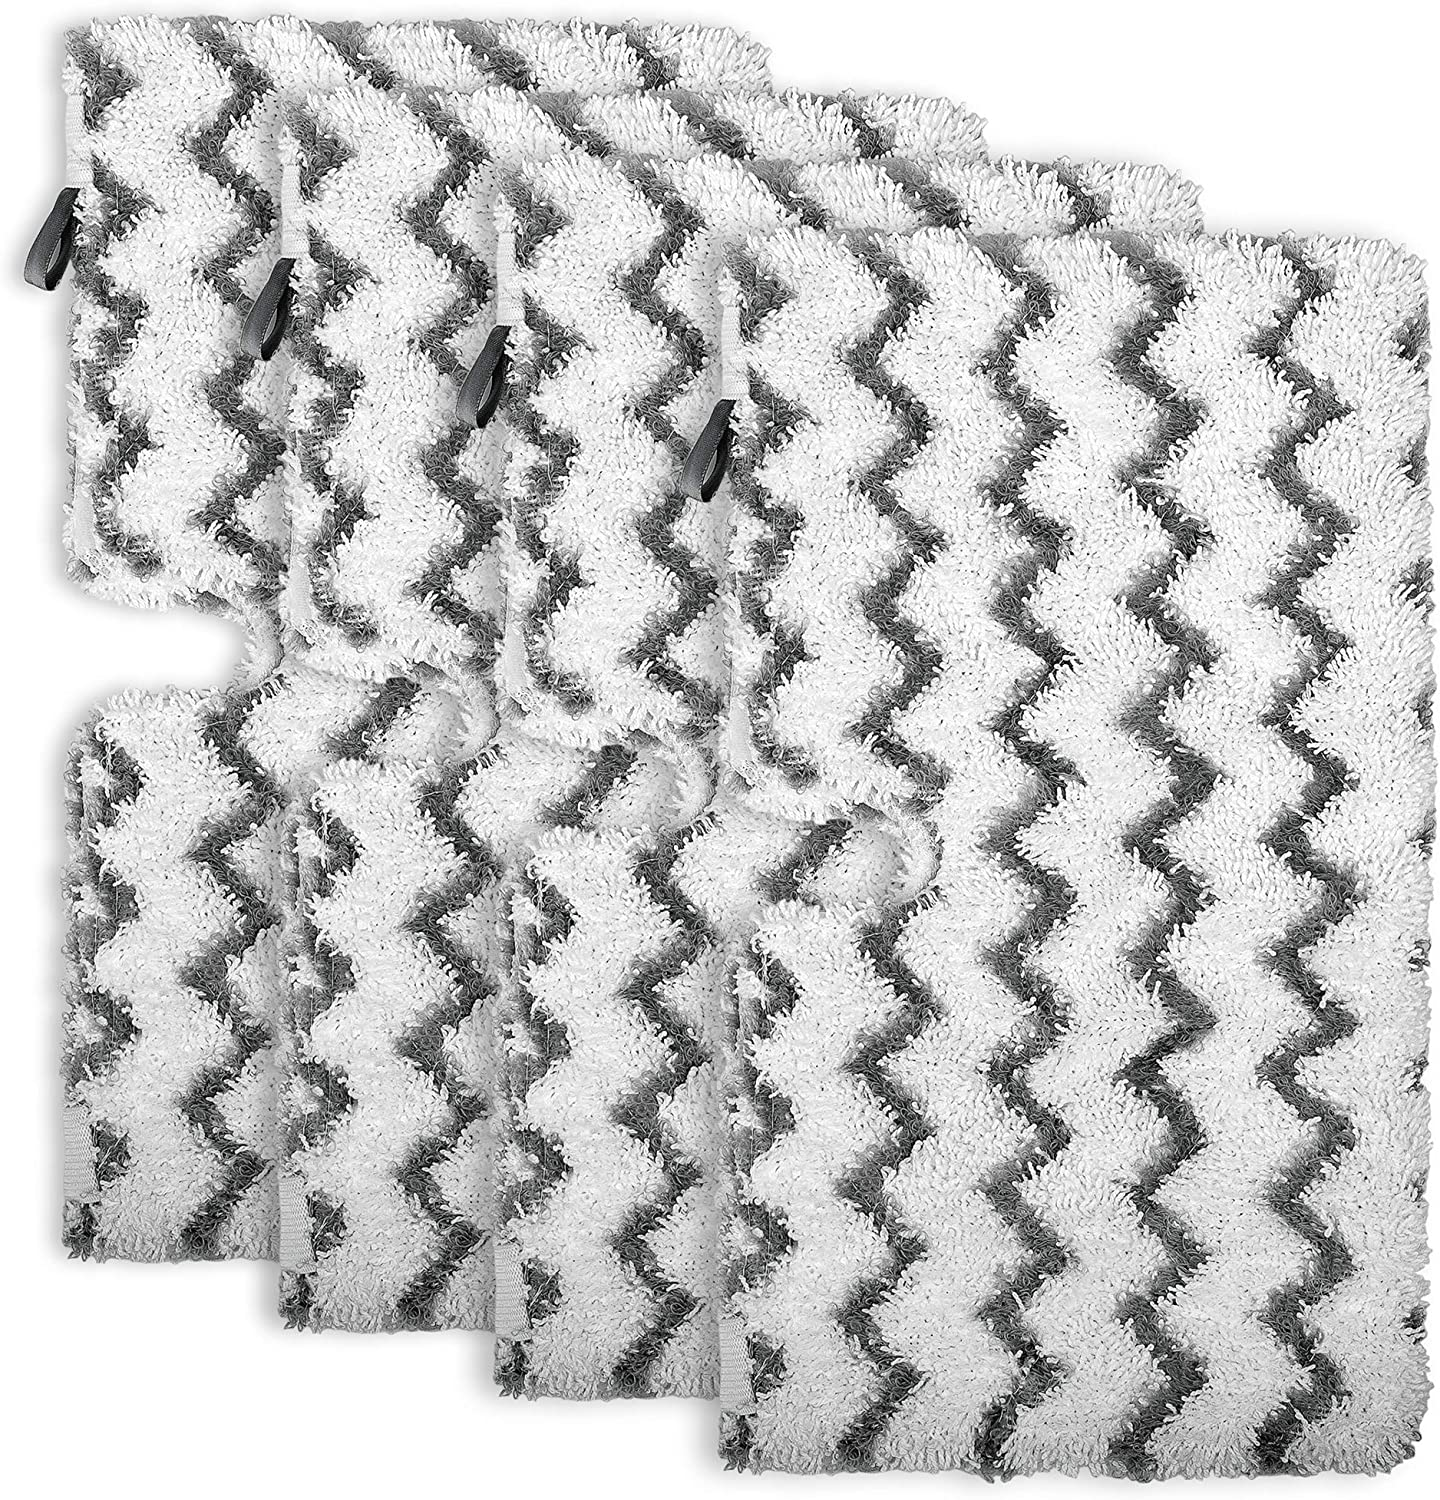 Flammi 4 Pack Replacement Steam Mop Pads Microfiber Scrub Pad for Shark Steam Pocket Mop S3500 Series S3501 S3601 S3550 S3801 S3901 SE450 S3601D S3901D